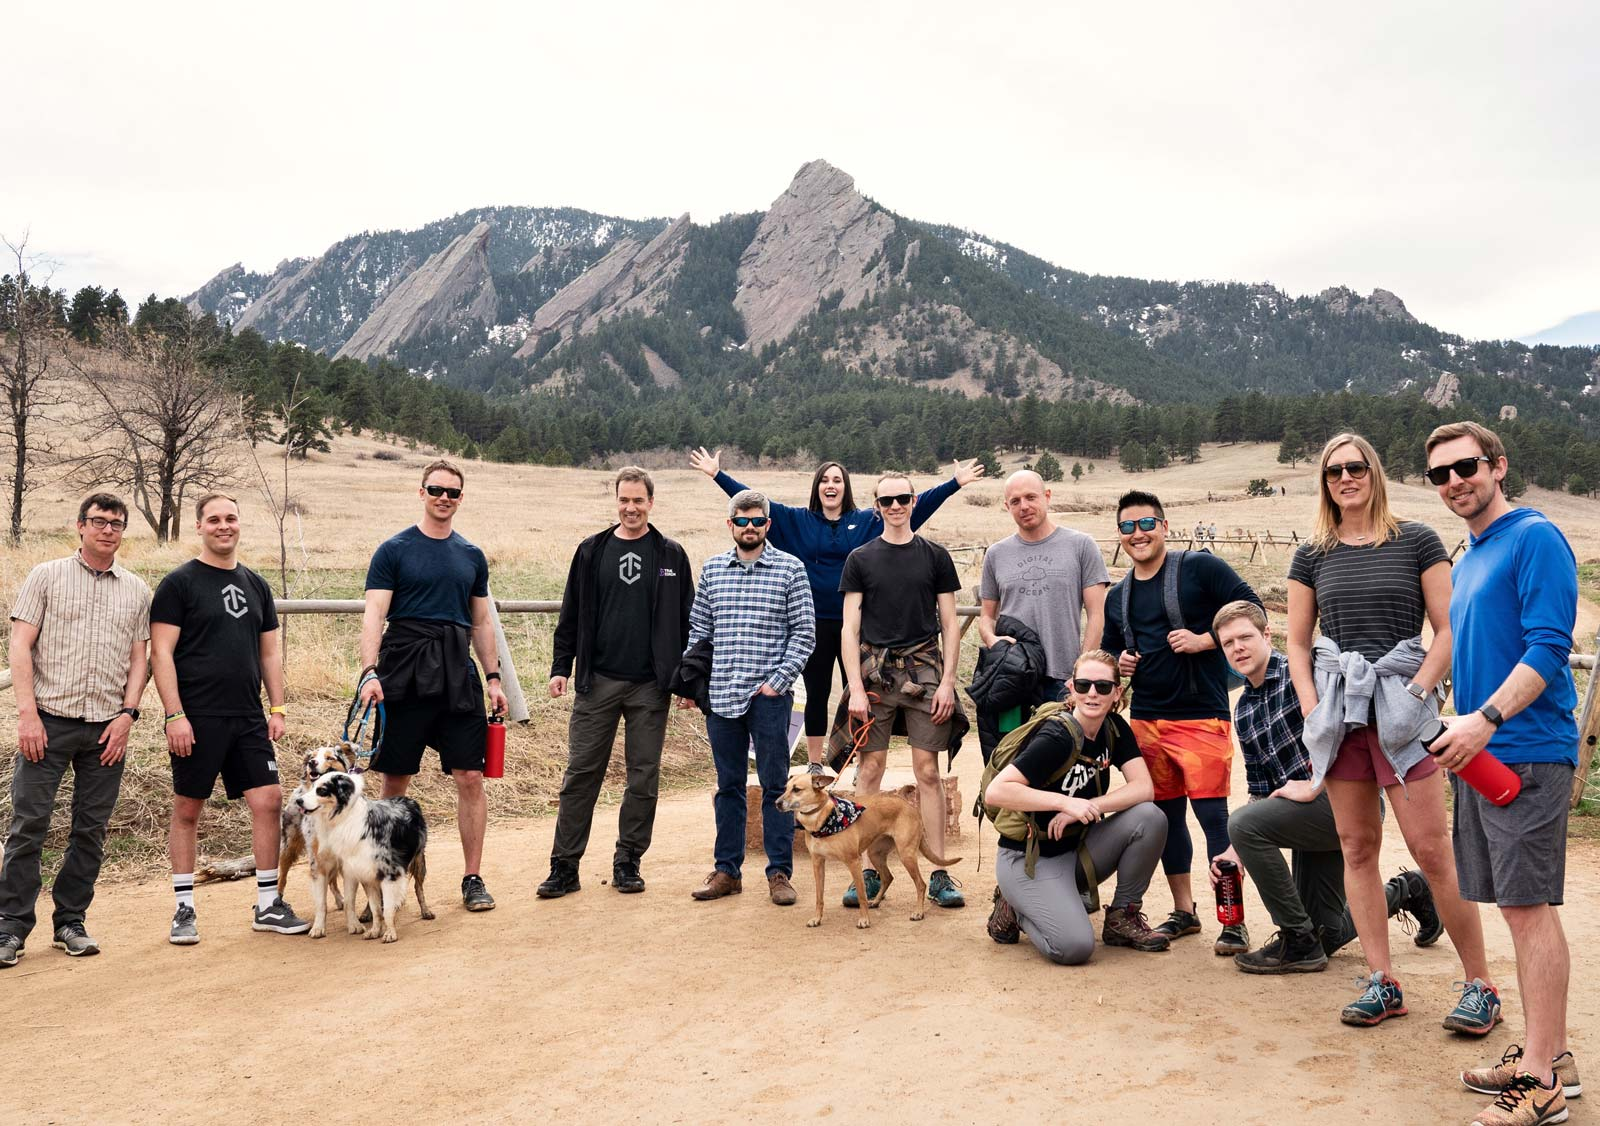 Team hike at Chatuaqua, Boulder, Colorado